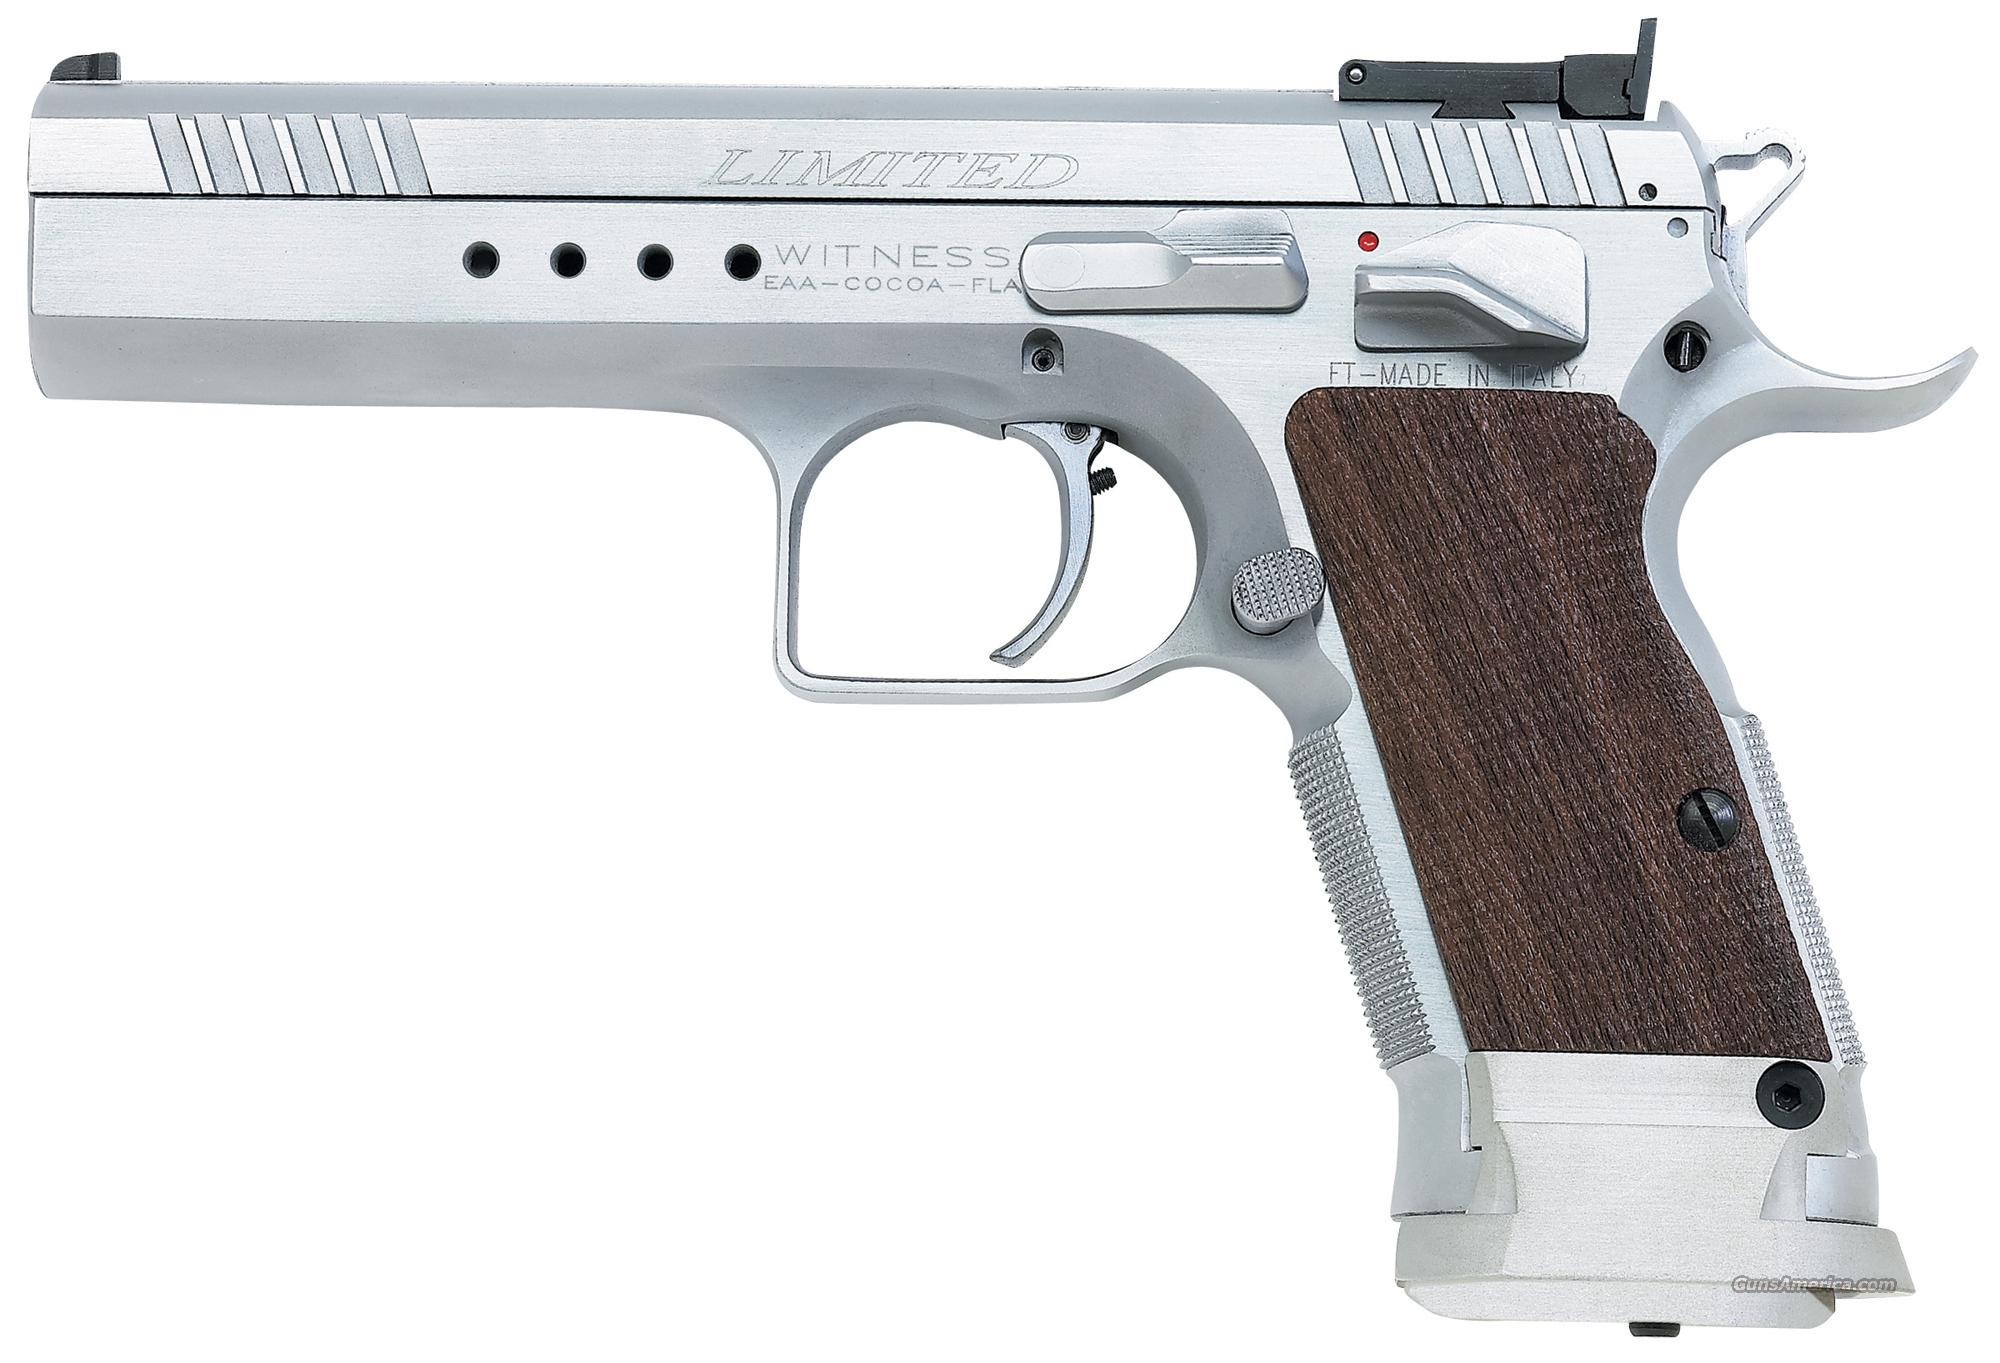 EAA Witness Elite Limited 9mm Tanfoglio 17 Round Hard Chrome *NEW* 600310  Guns > Pistols > EAA Pistols > Other